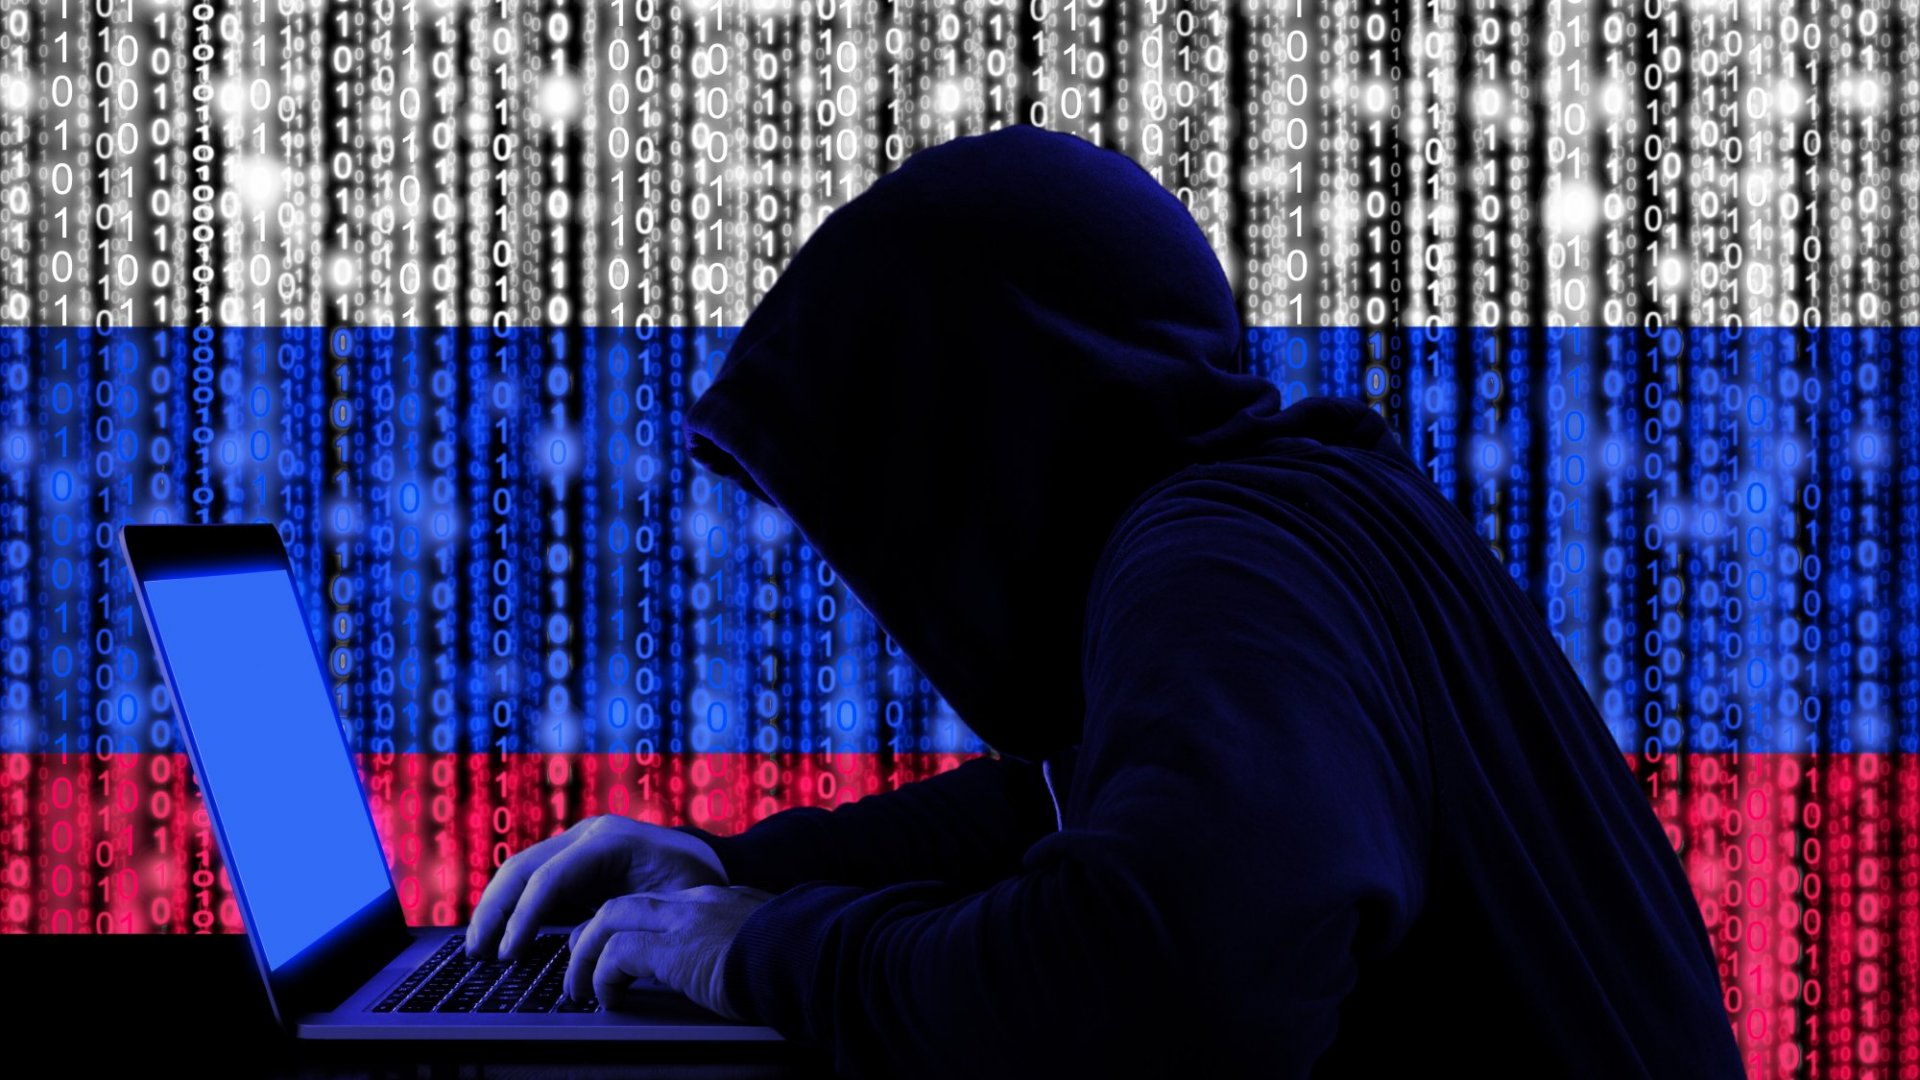 Russian Hacker Receives Record 27 Year Jail Sentence in USA